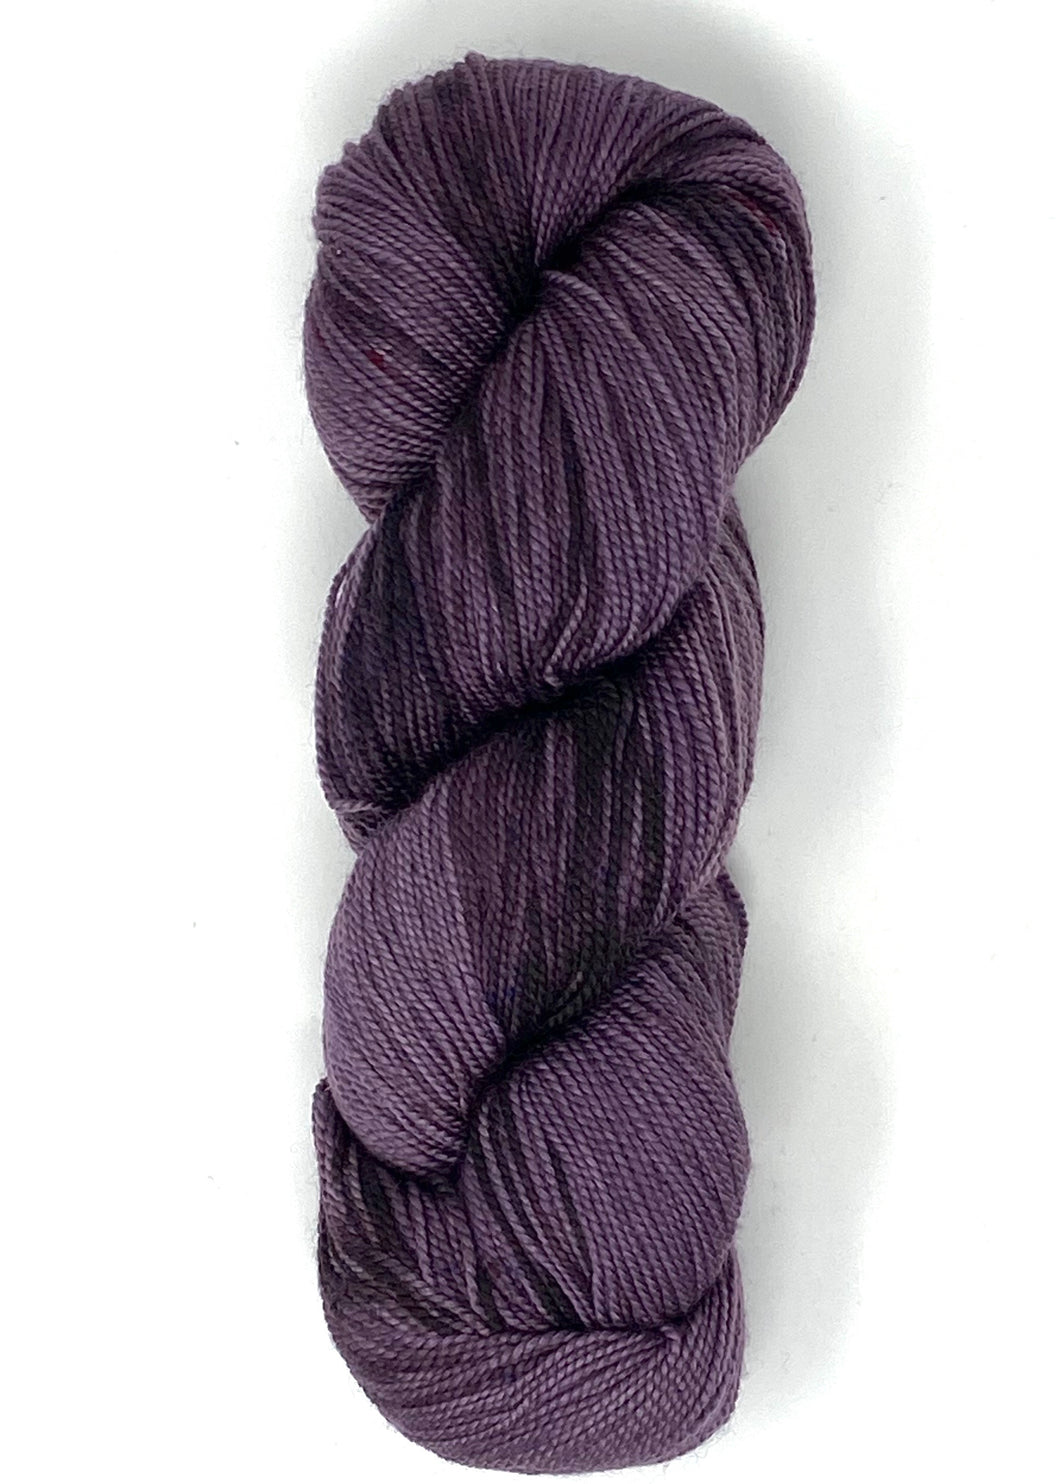 Grape To Meet You - Baah Yarn La Jolla